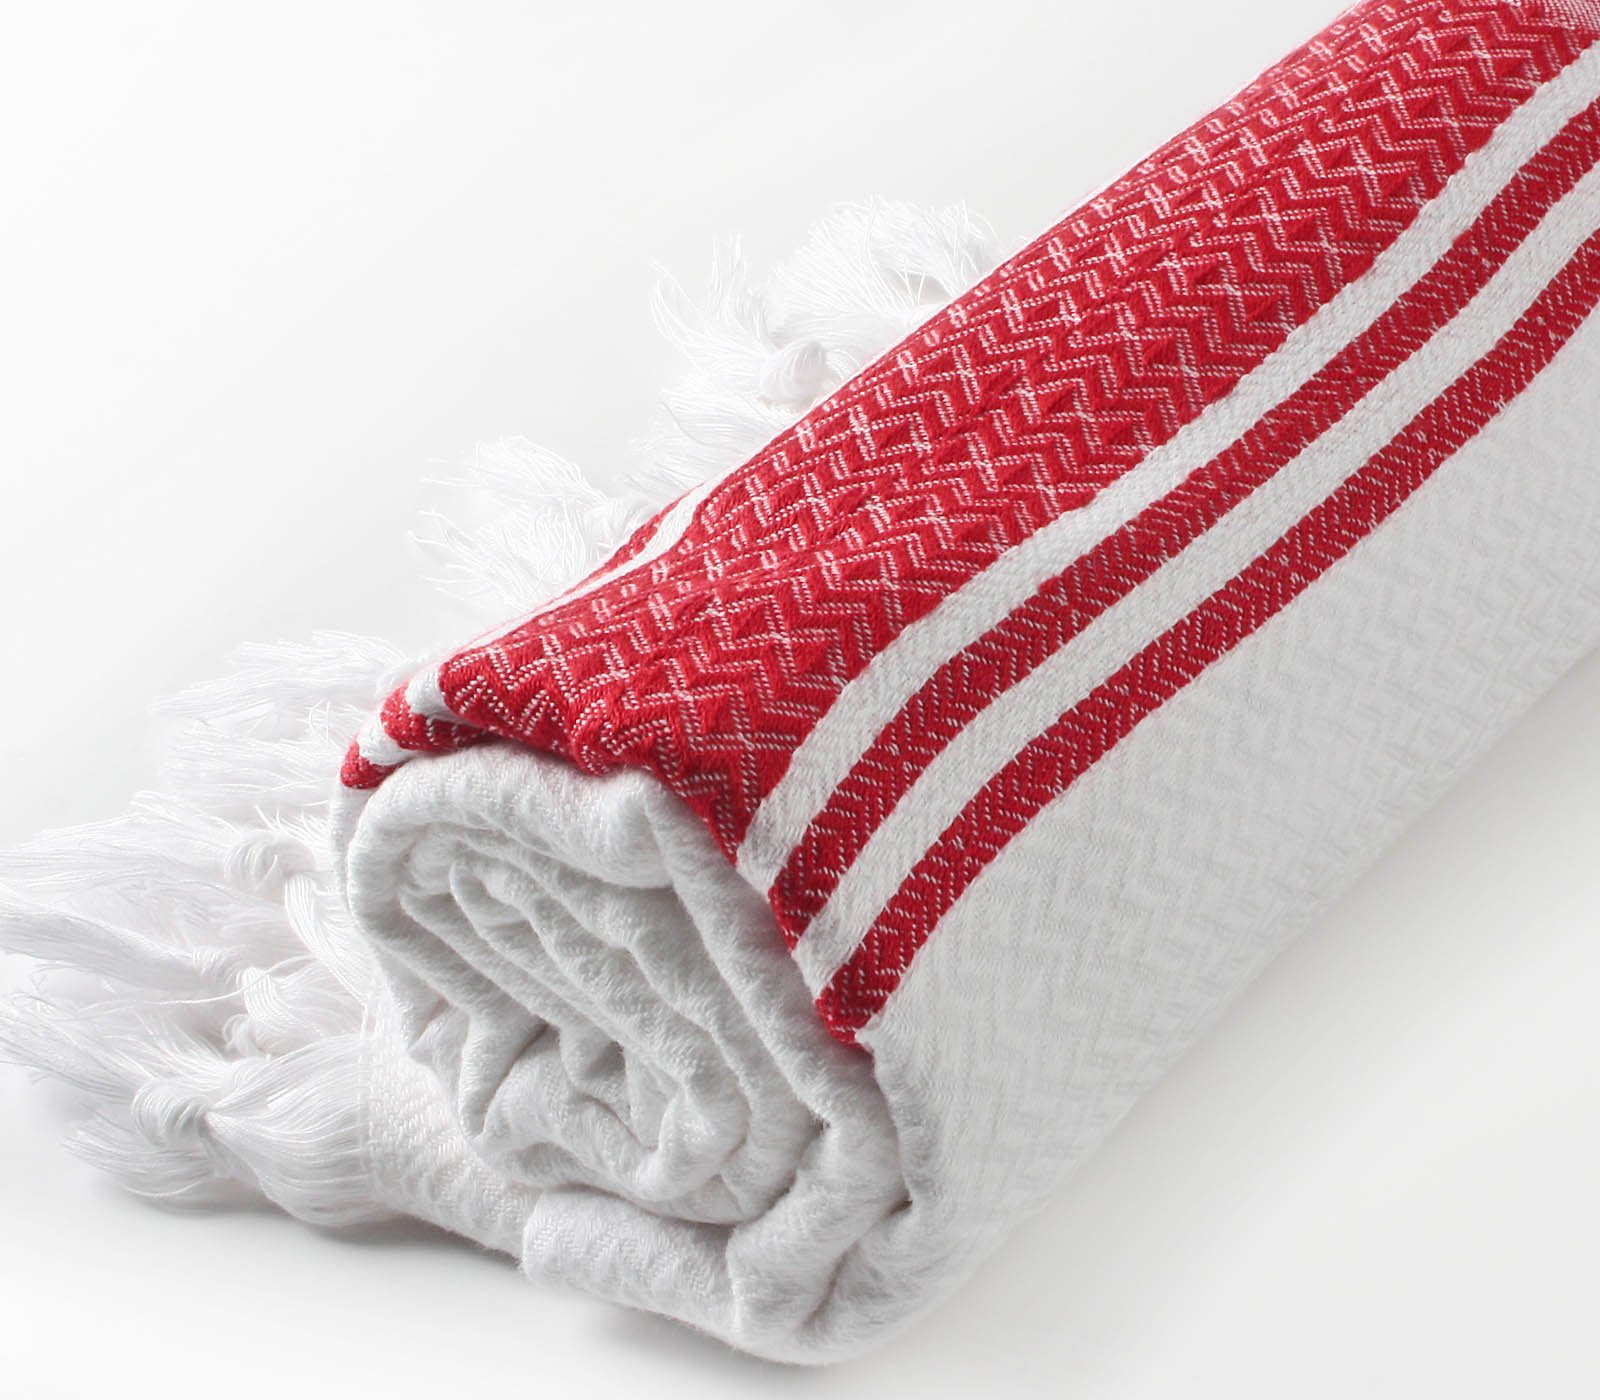 Cacala Bamboo Pestemal Turkish Bath Towel Sarong Unisex 37x71 TM Red - 100% pure bamboo cotton Peshtemal - tight woven- fringed edges due its natural form Material: bamboo + 100% pure cotton Best quality / price ratio - bath, spa, beach, pool, gym, fitness, yacht, yoga towel - bathroom-linens, bathroom, bath-towels - 81Nzz%2Ba9unL -